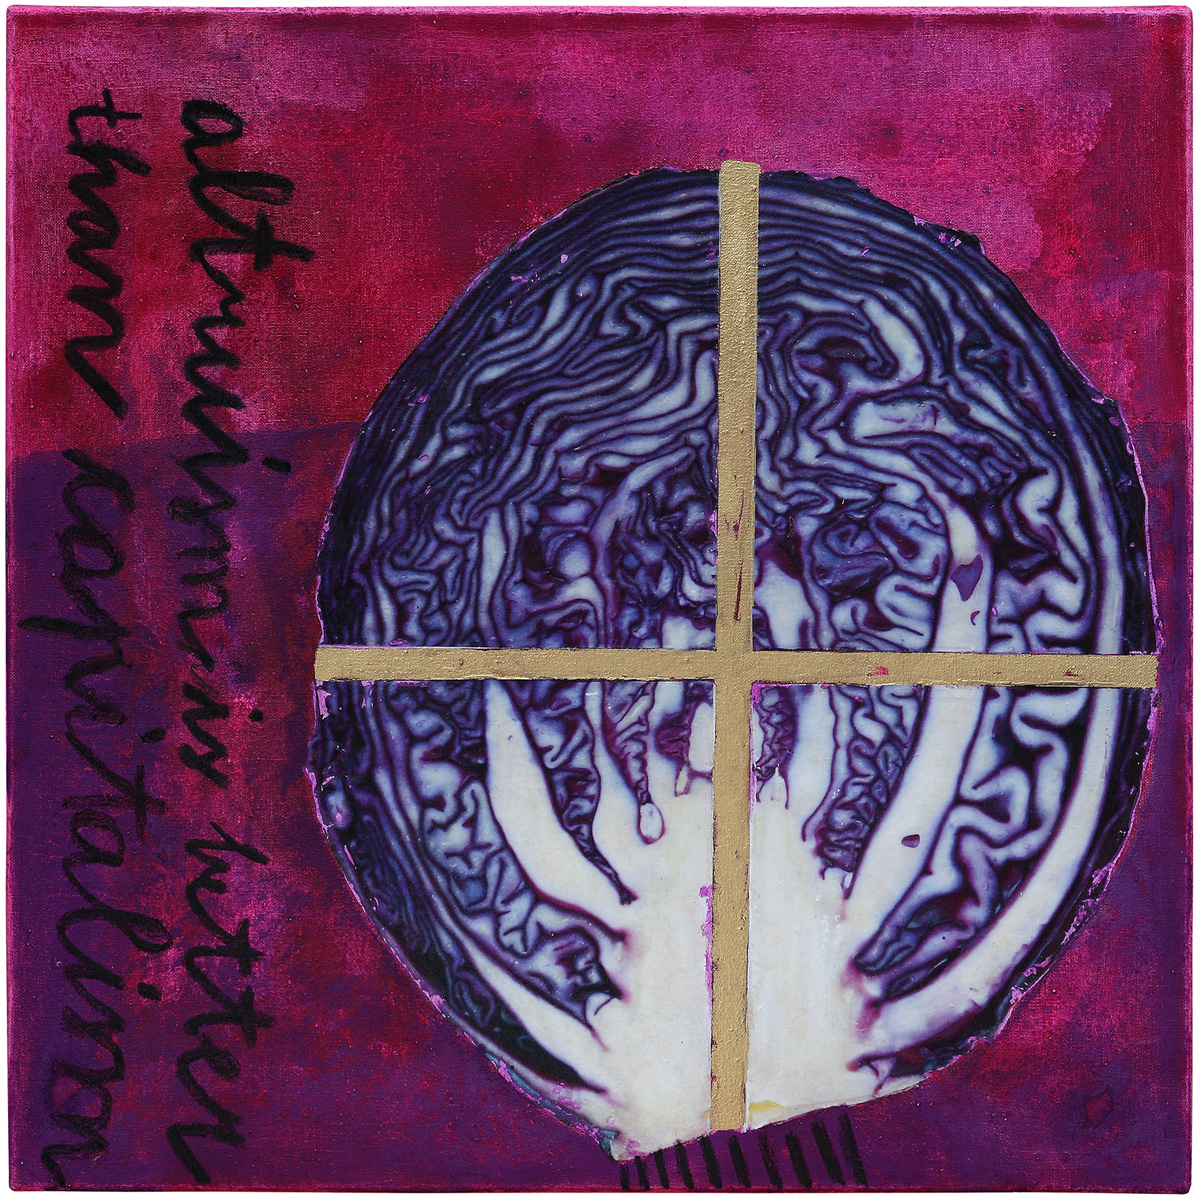 Red cabbage, 2014, mixed media on canvas, 50 x 50 cm